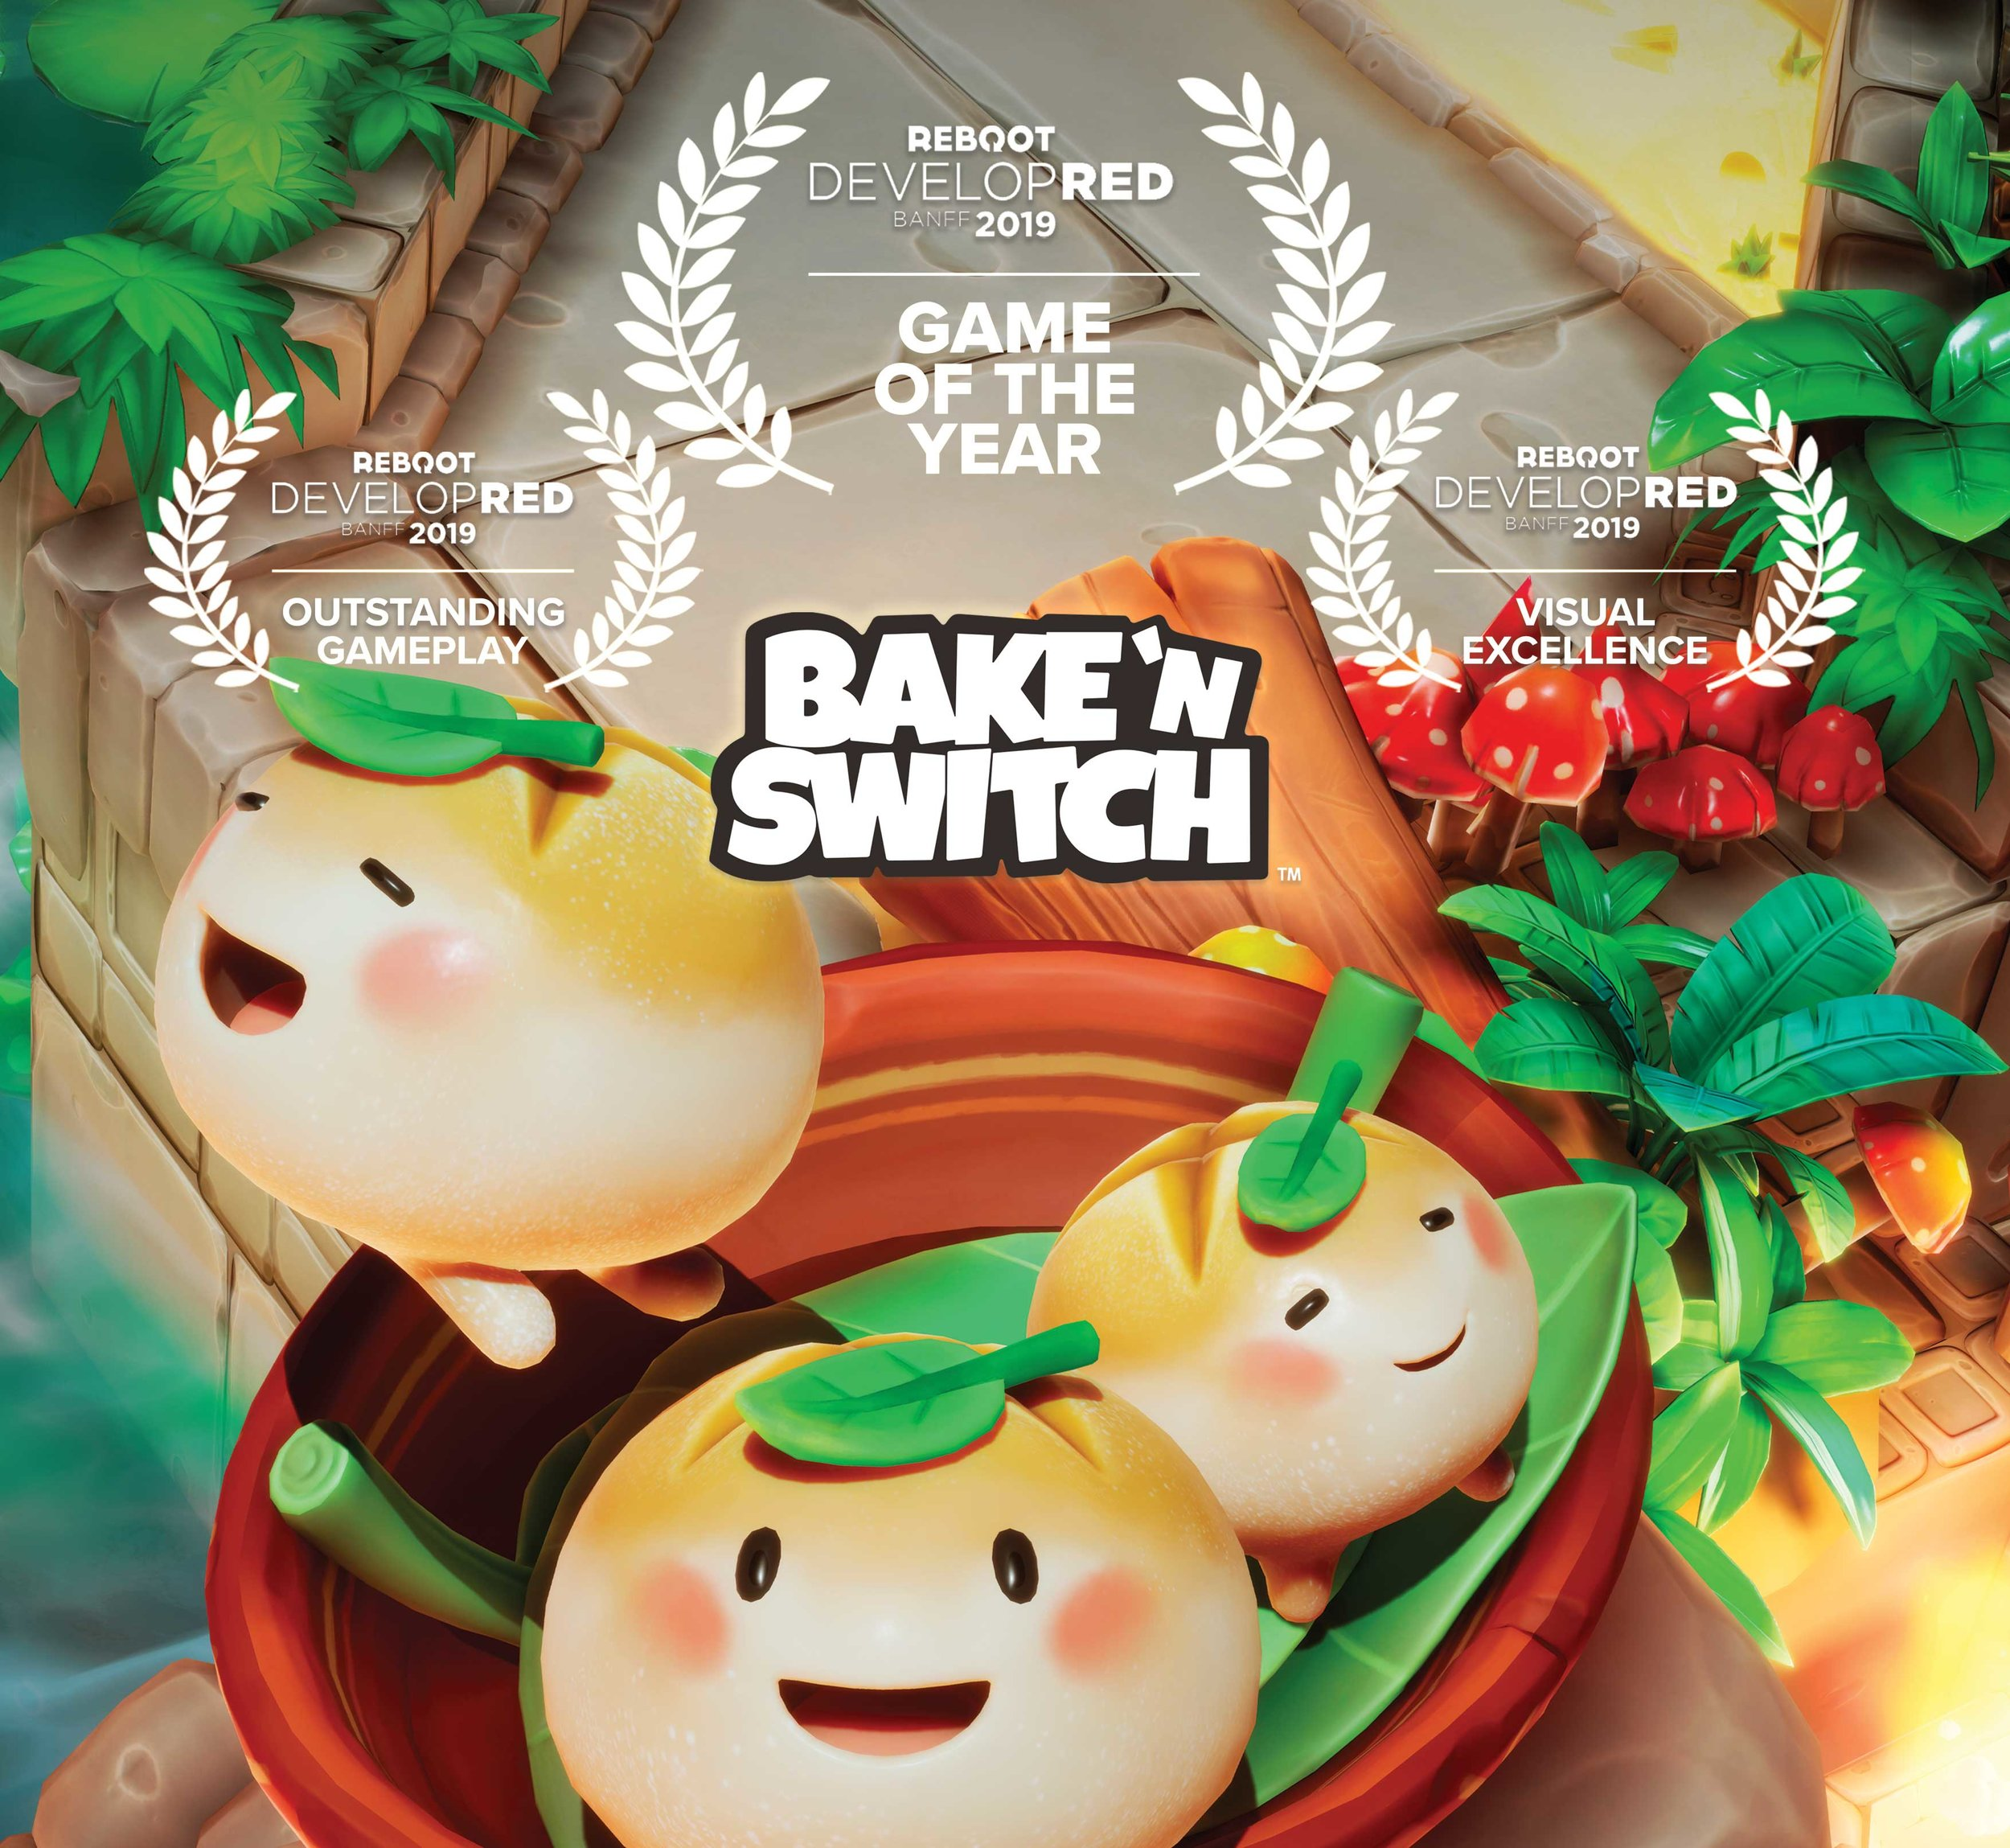 Bake 'n Switch takes home Game of the Year at Reboot Develop Red 2019